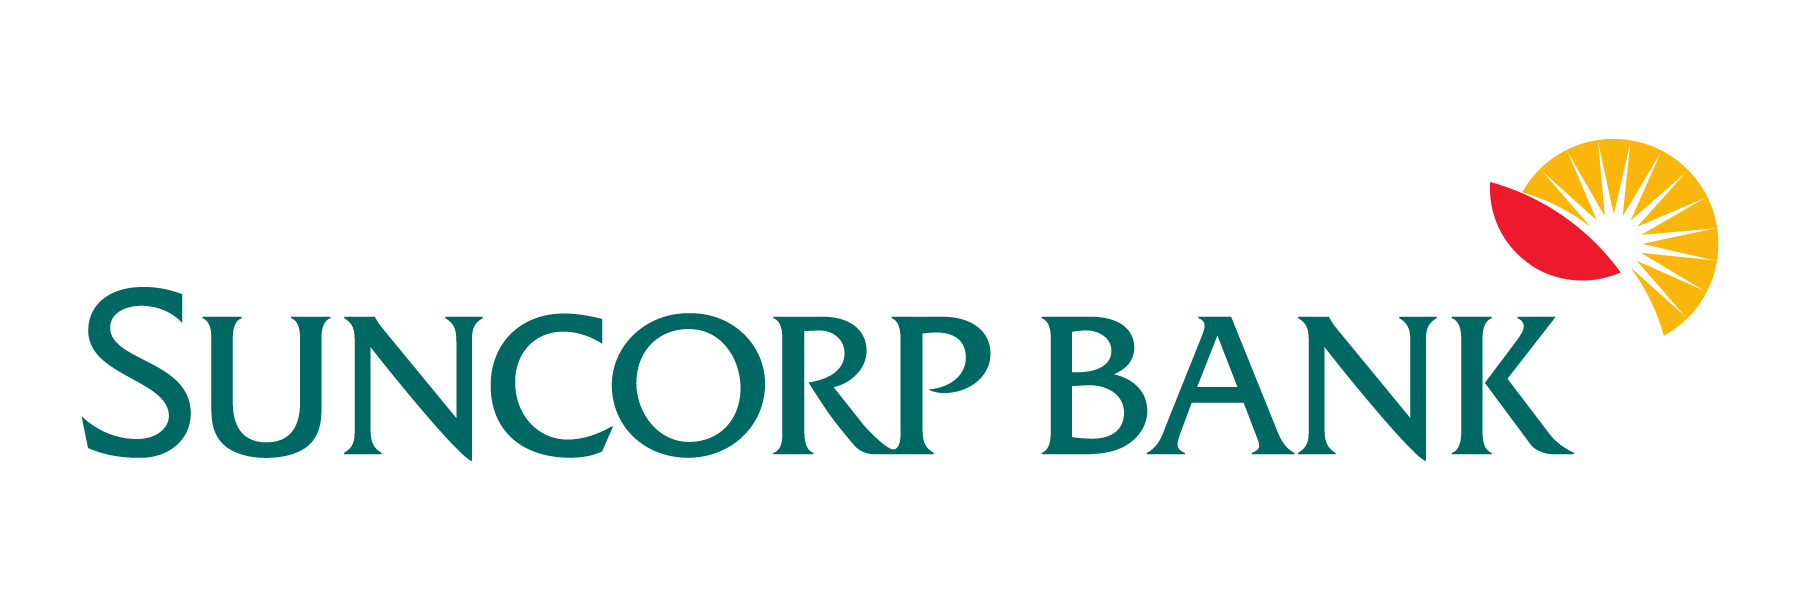 Suncorp_Bank_logo.png